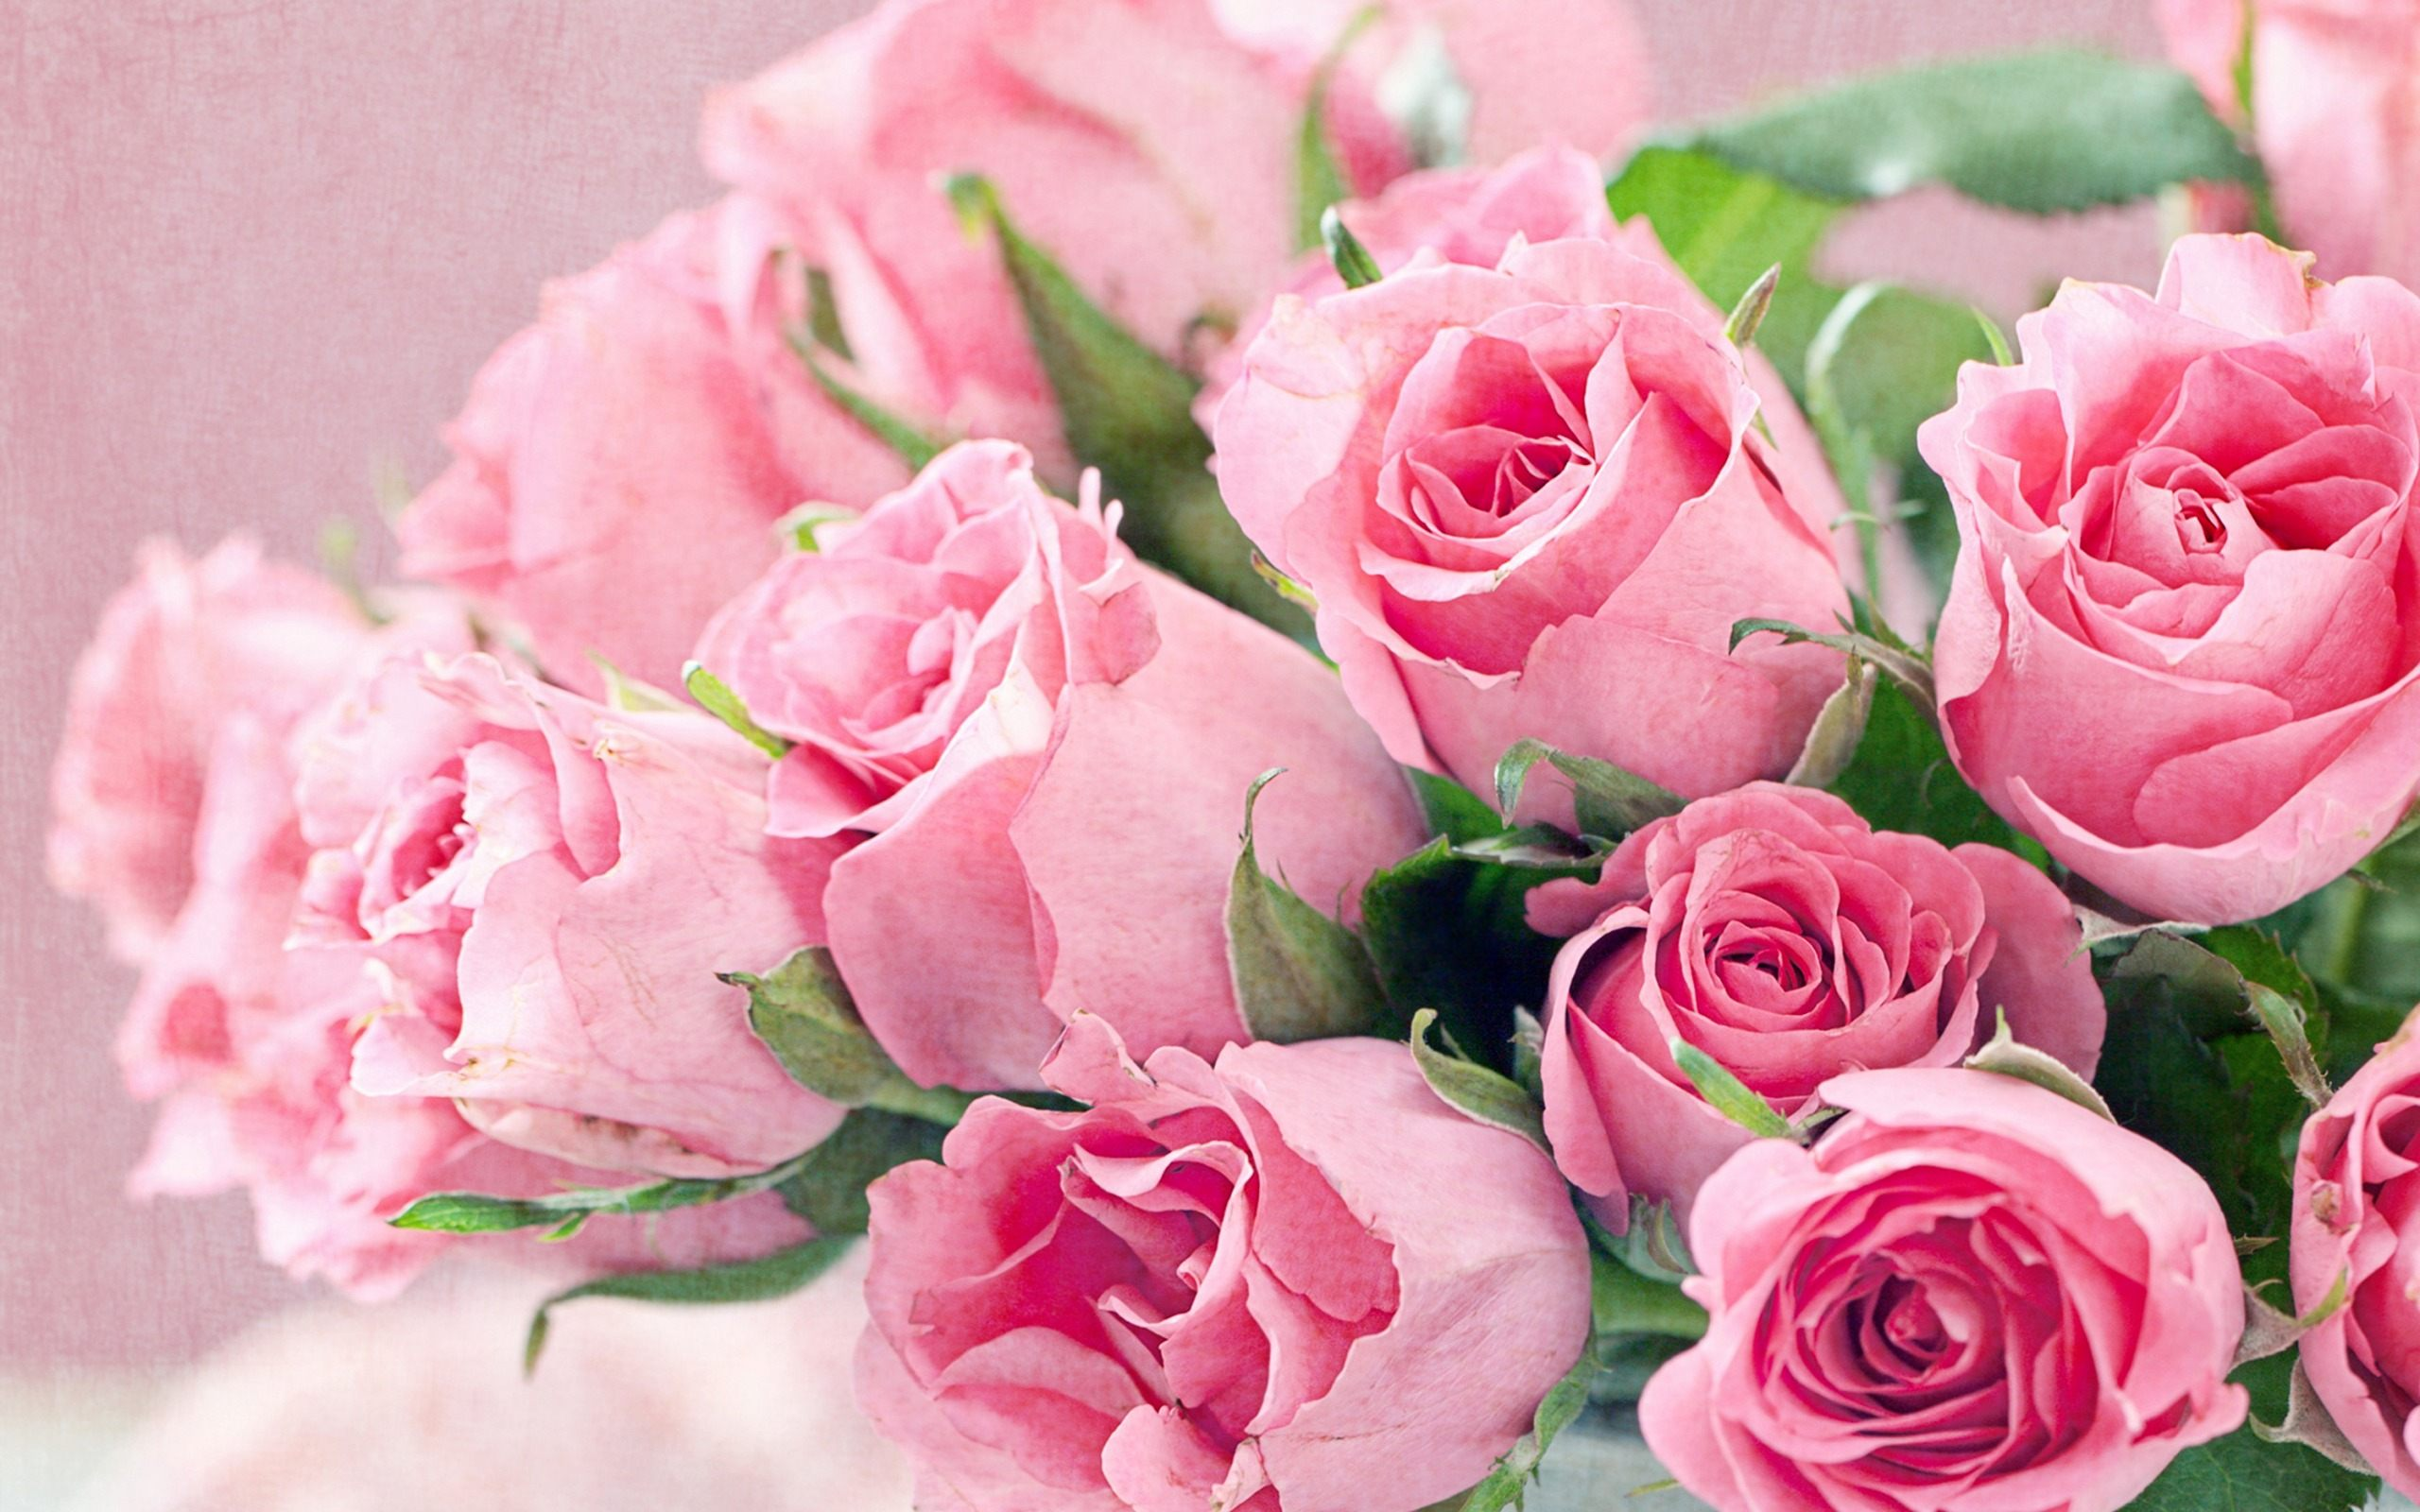 Are you running around to buy fresh cut wholesale flowers?